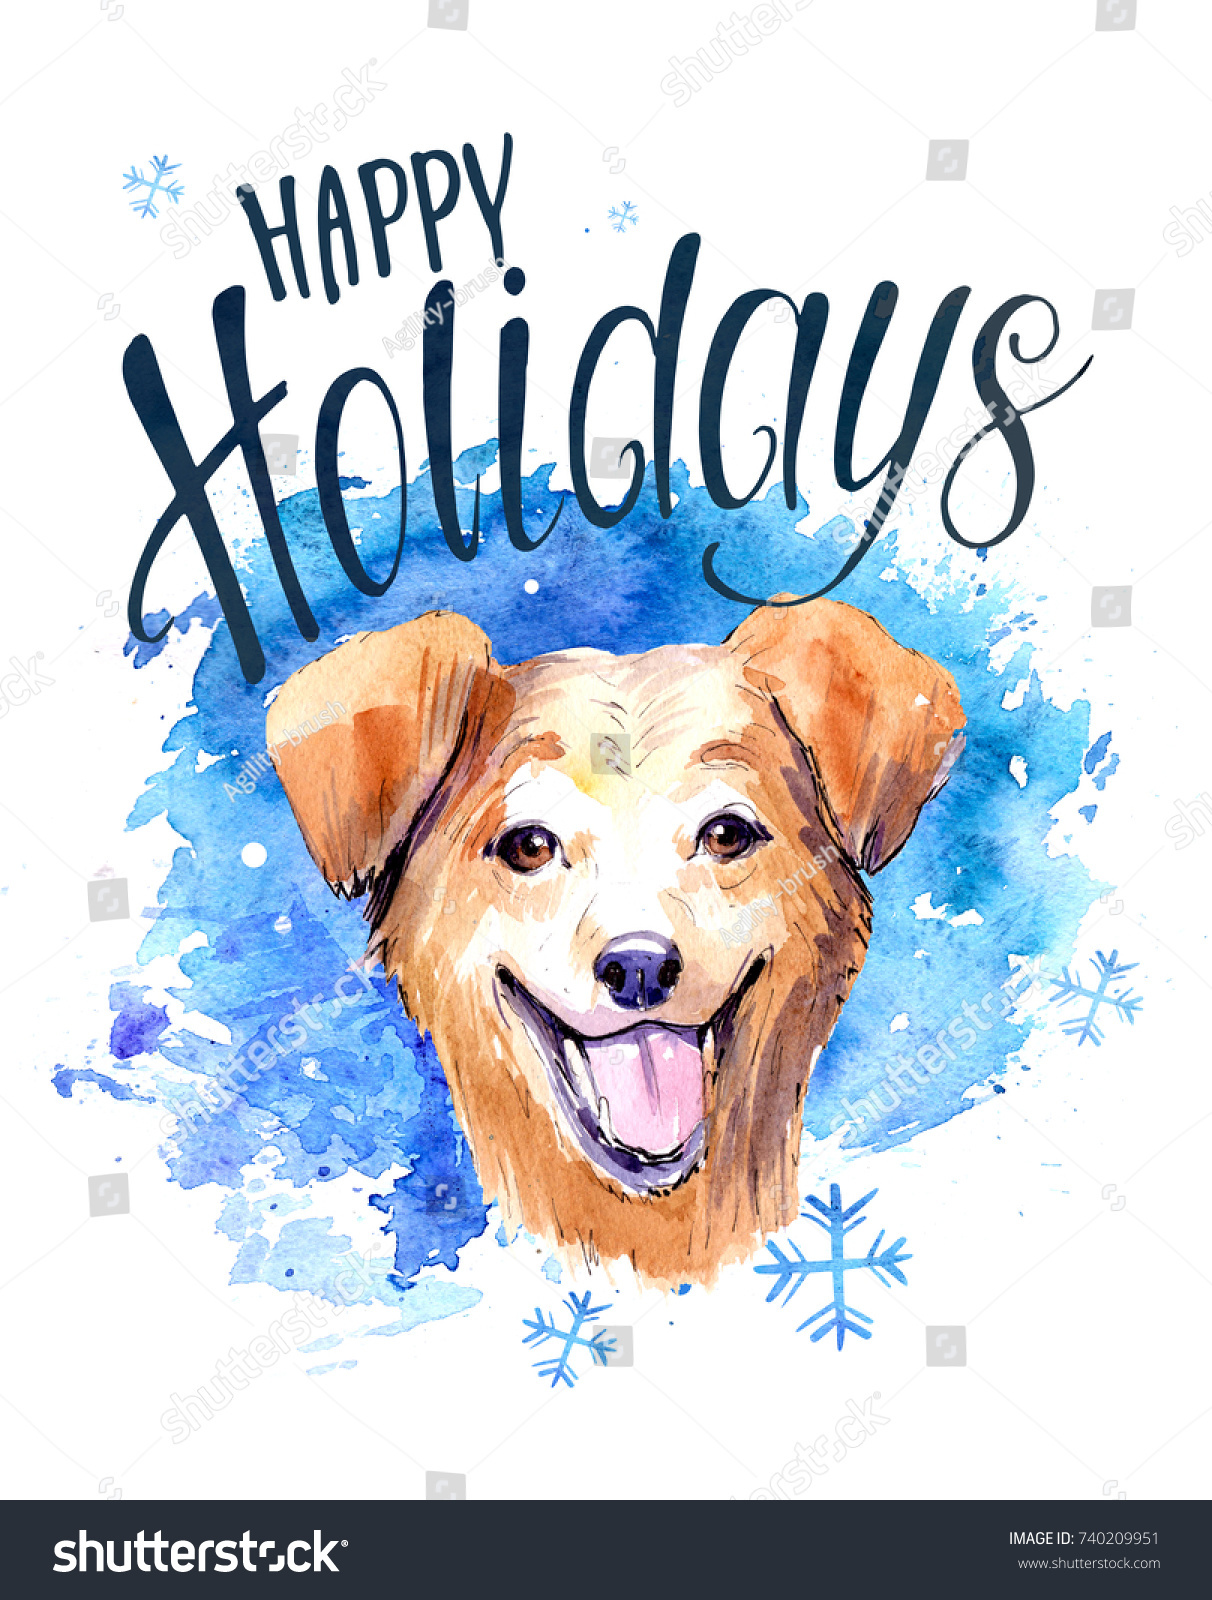 Christmas Card Dog Watercolor Hnd Drawn Stock Illustration 740209951 ...